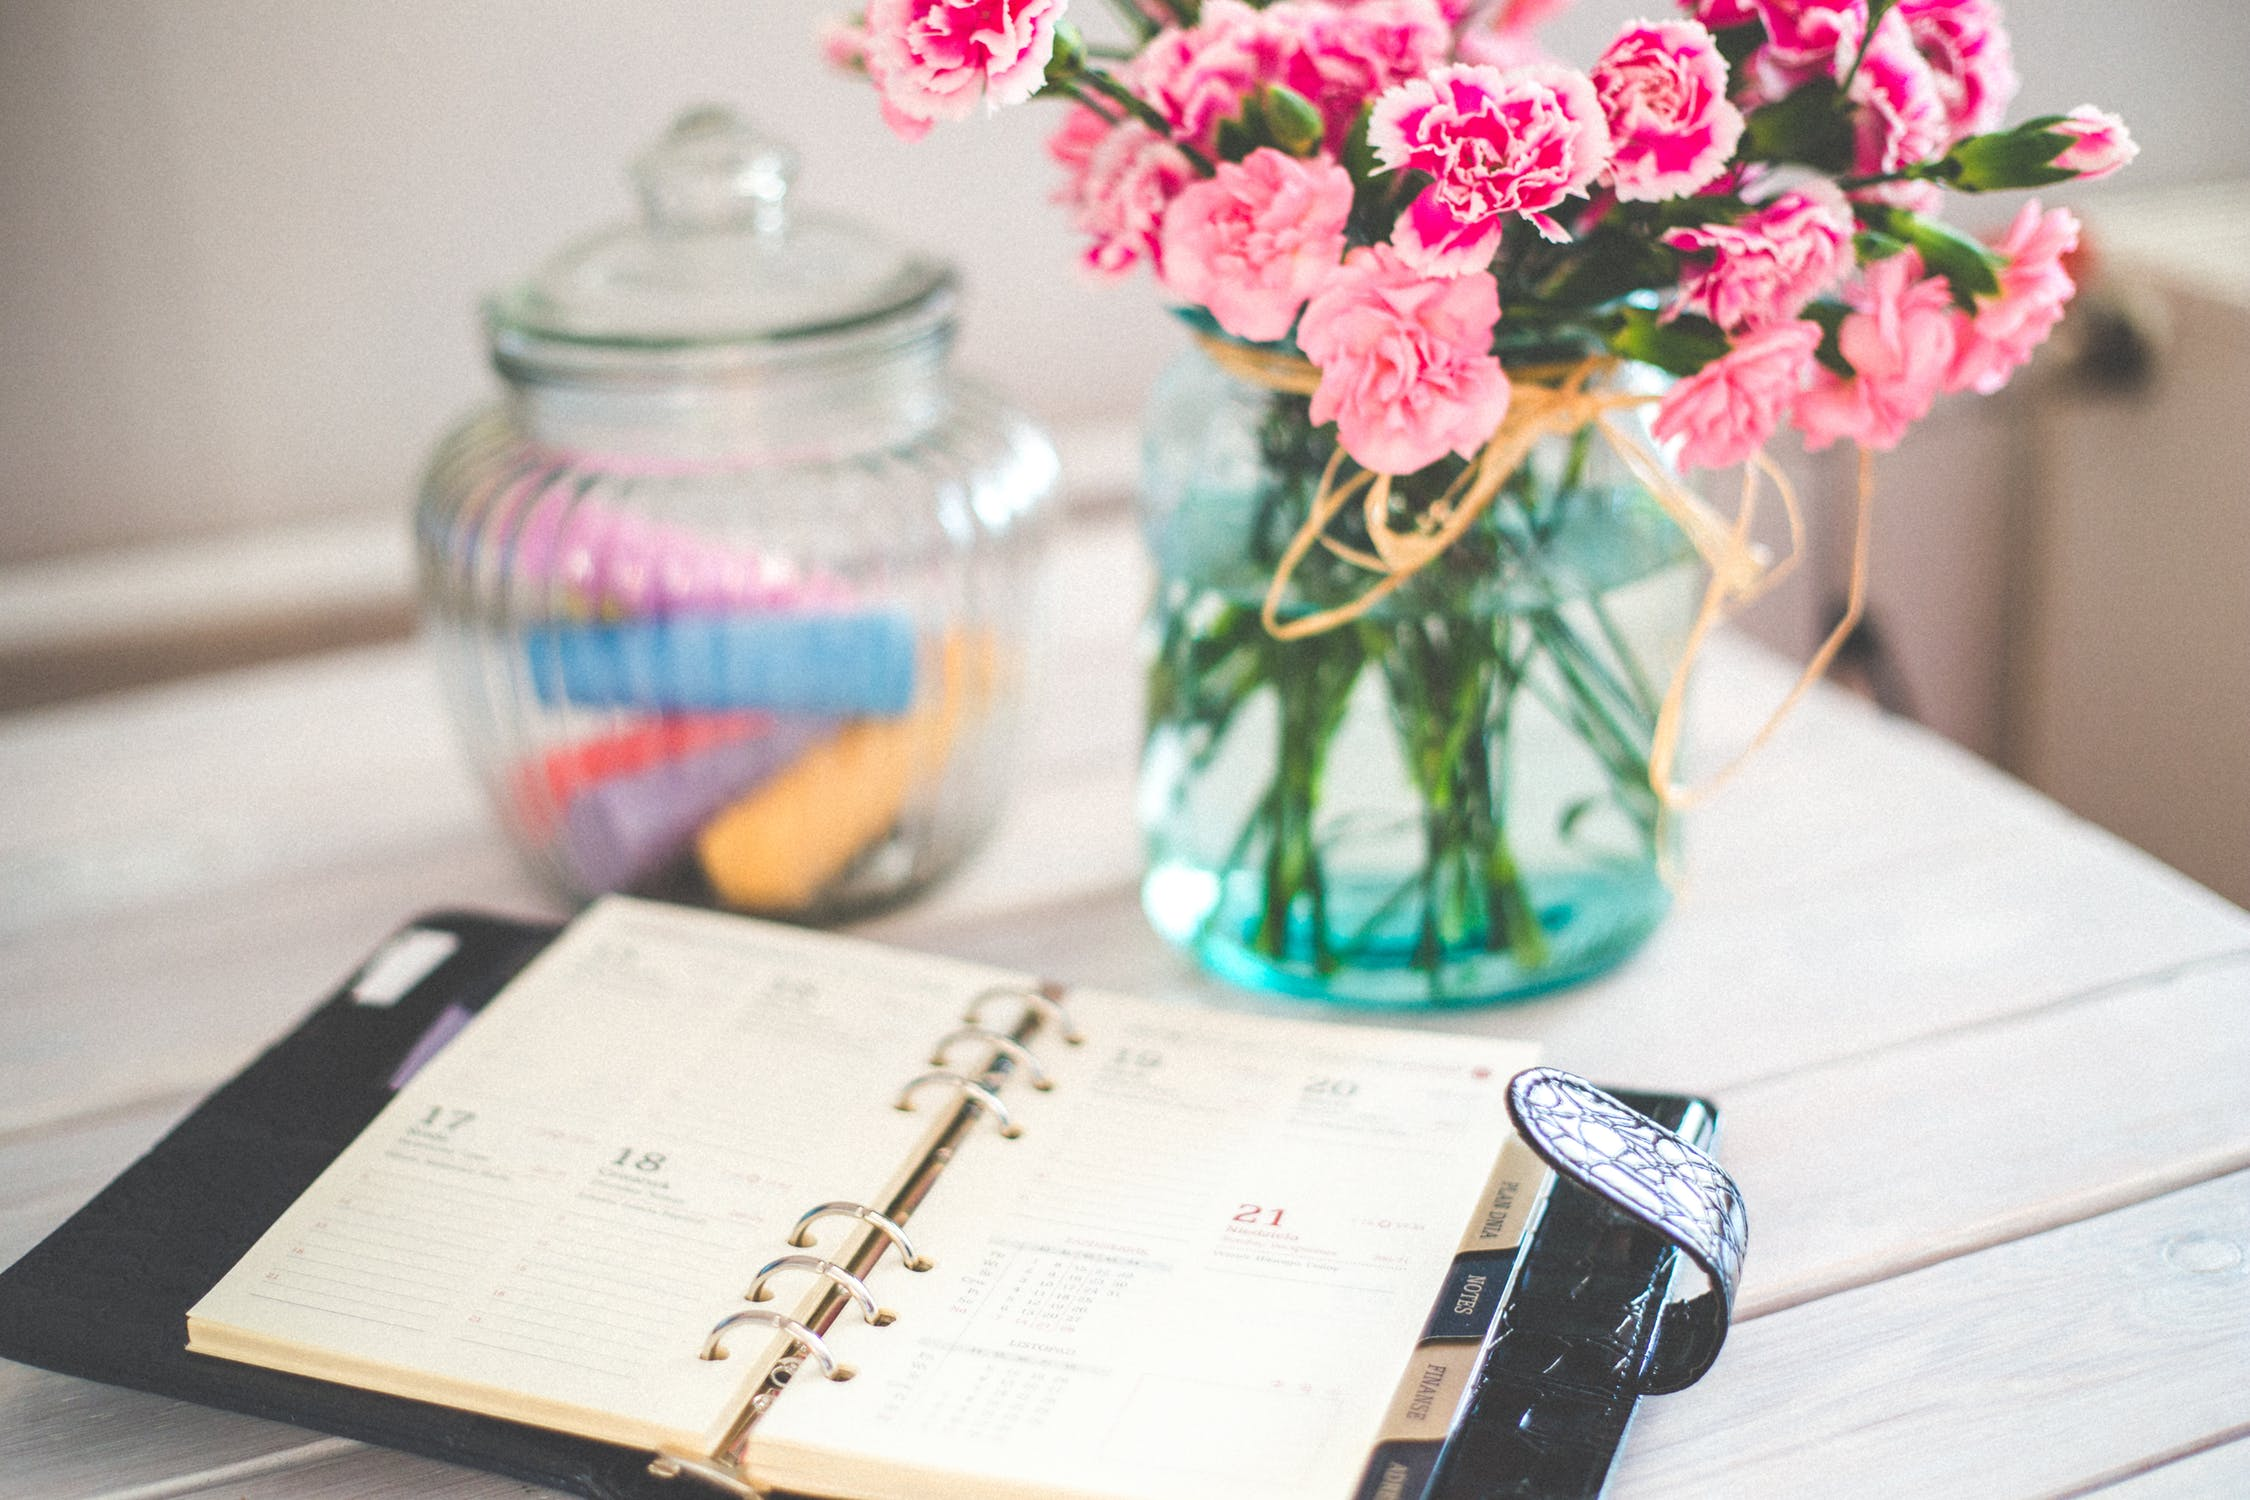 agenda on desk with flowers